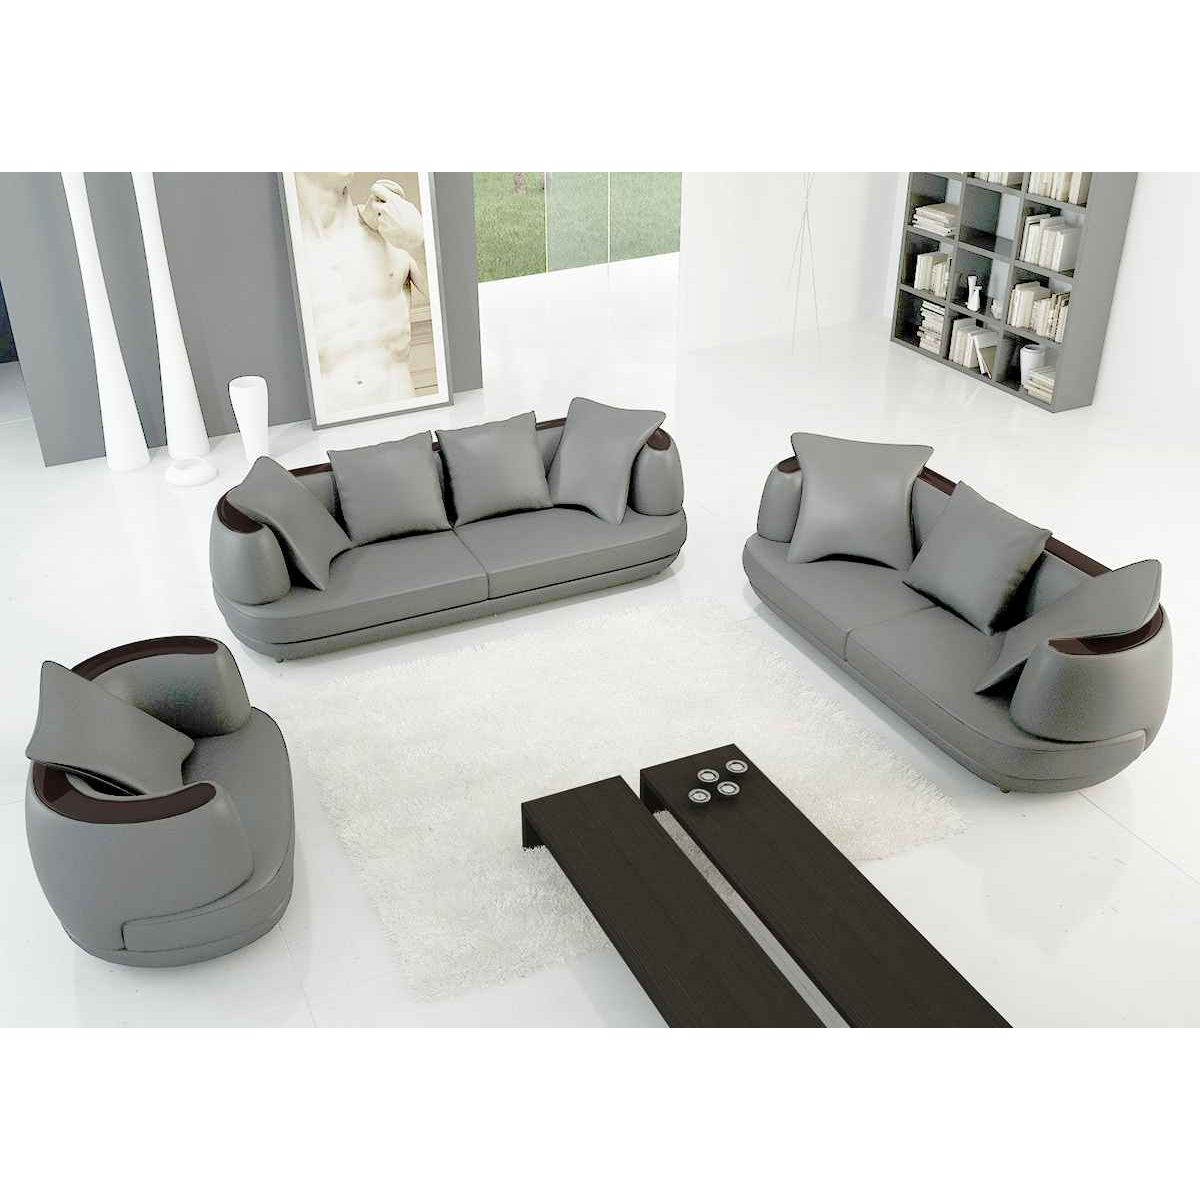 DECO IN PARIS Ensemble Canape Places En Cuir Gris Clair Ryga - Canape cuir gris